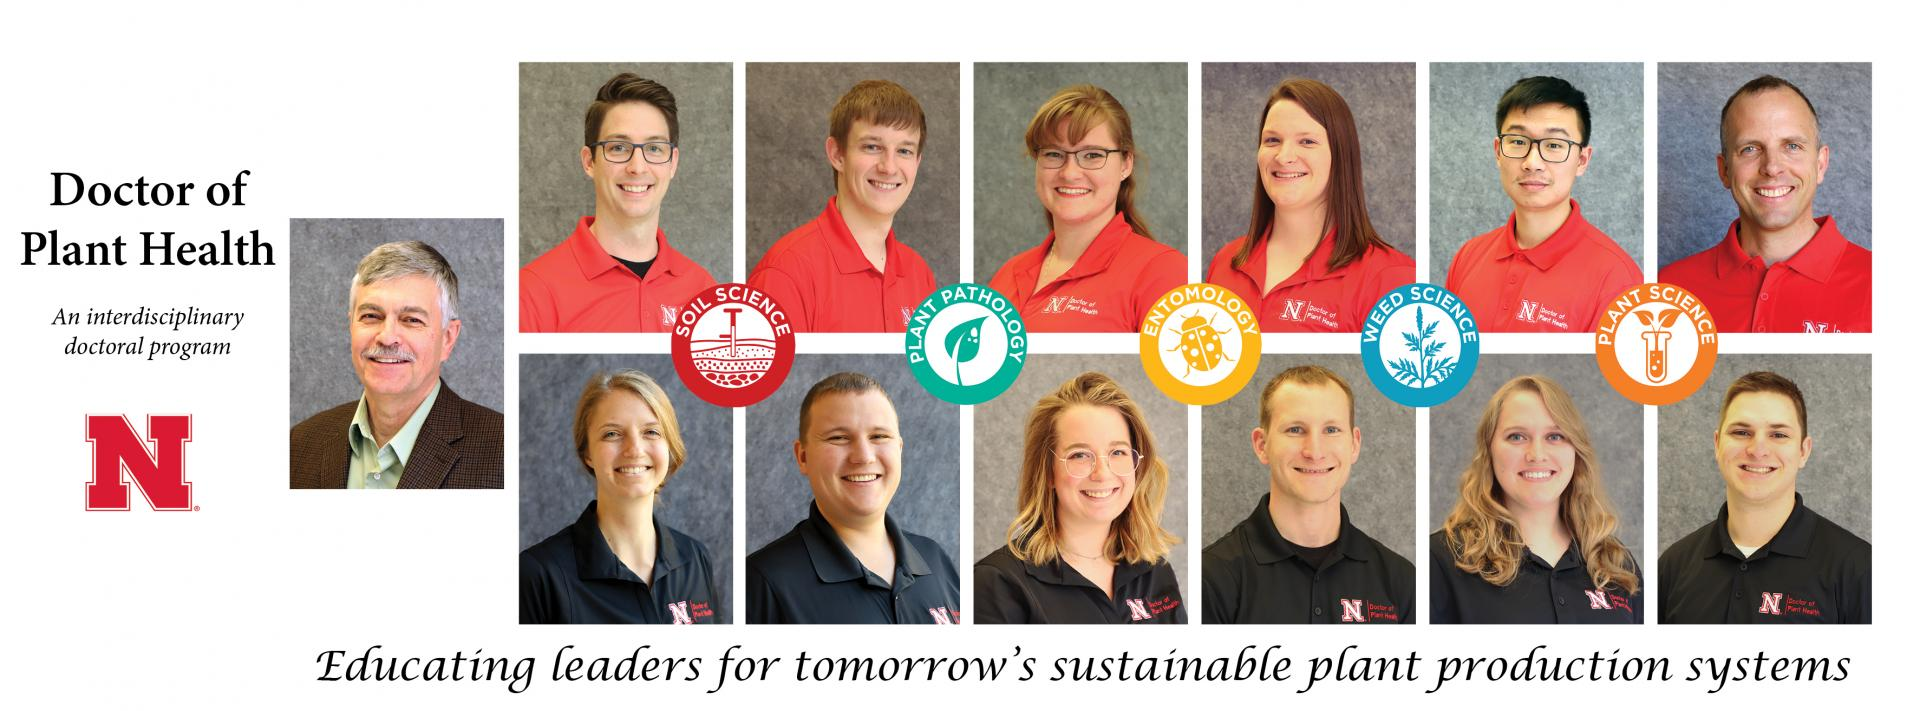 headshots of Doctor of Plant Health students. Educating leaders for tomorrow's sustainable plant production systems.